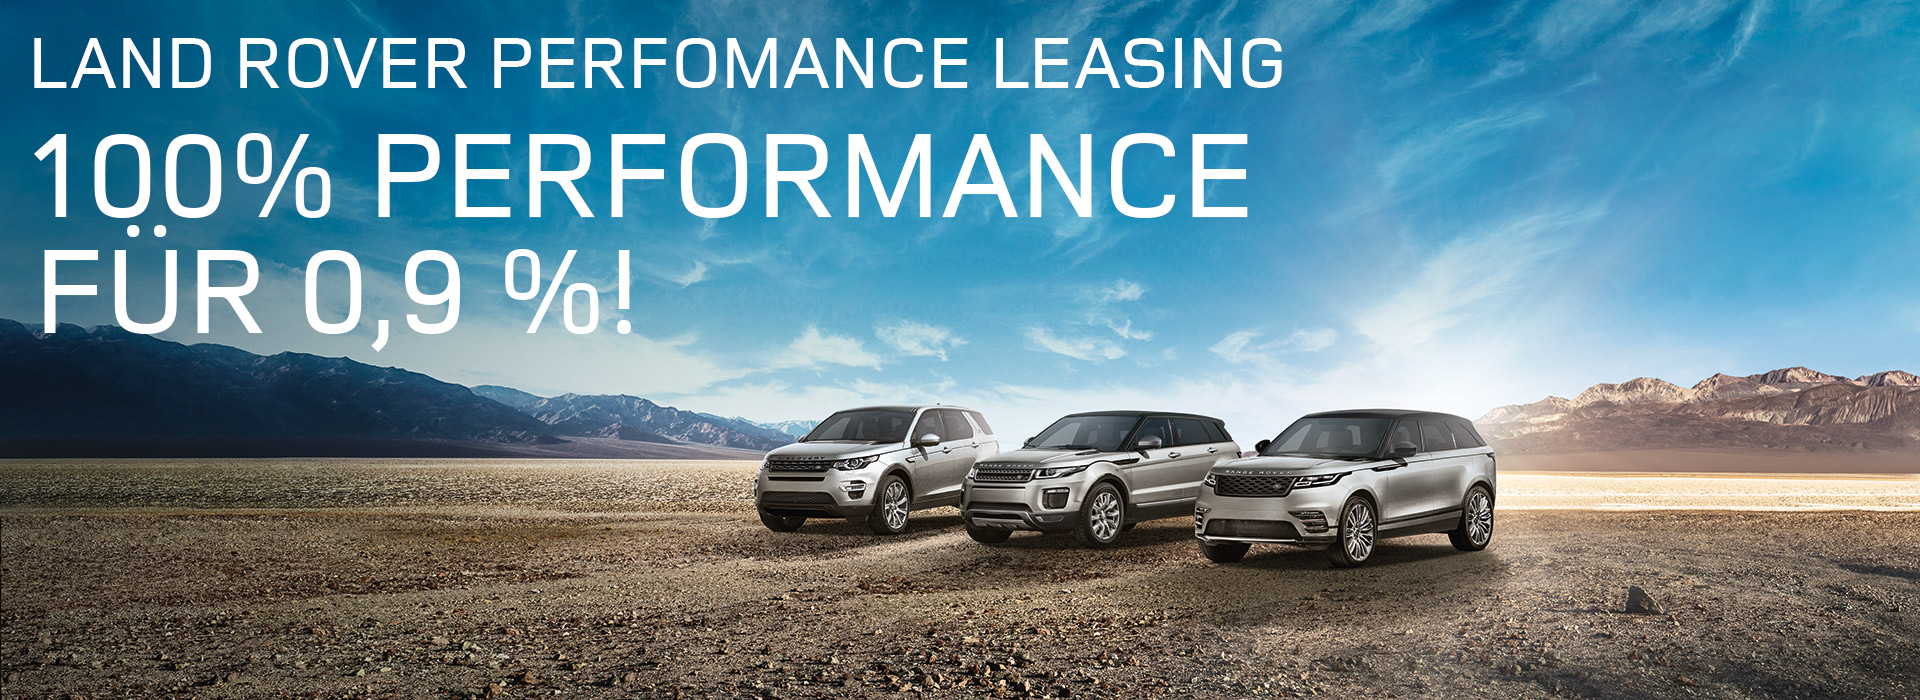 Land Rover Performance Leasing